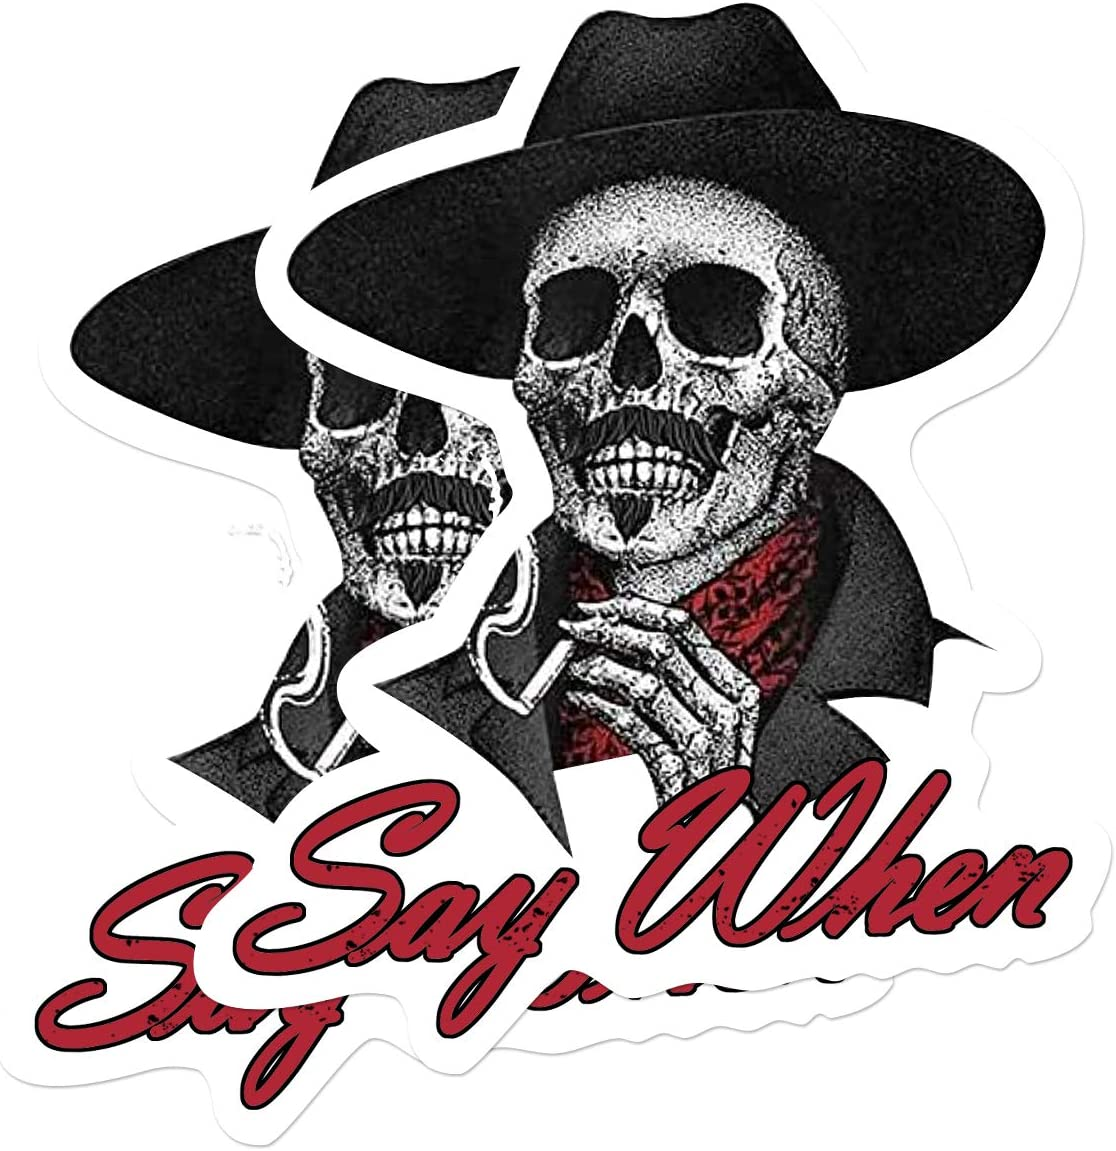 2-Pack Say When Laptop Stickers Decal, Skeleton Skull Tombstone Quote Decal-Funny Vinyl Decals for Laptop Car Bumper Window Decorations,Vivid Color and UV Fade Resistant 5x5